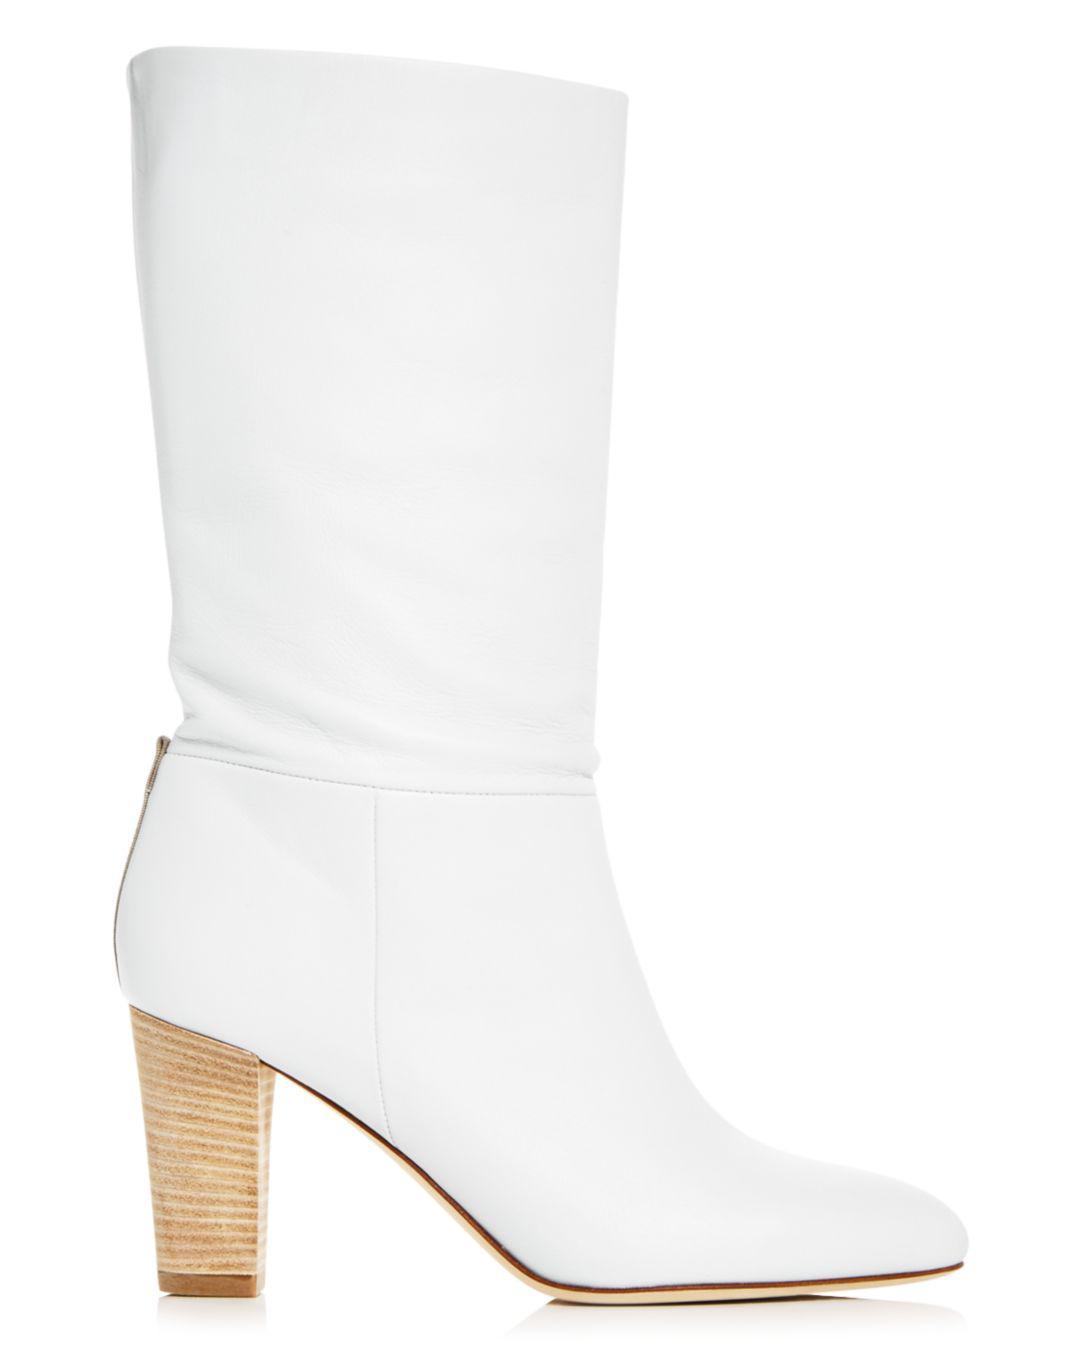 038142ae1216 Lyst - SJP by Sarah Jessica Parker Women s Reign High-heel Boots in White -  Save 30%